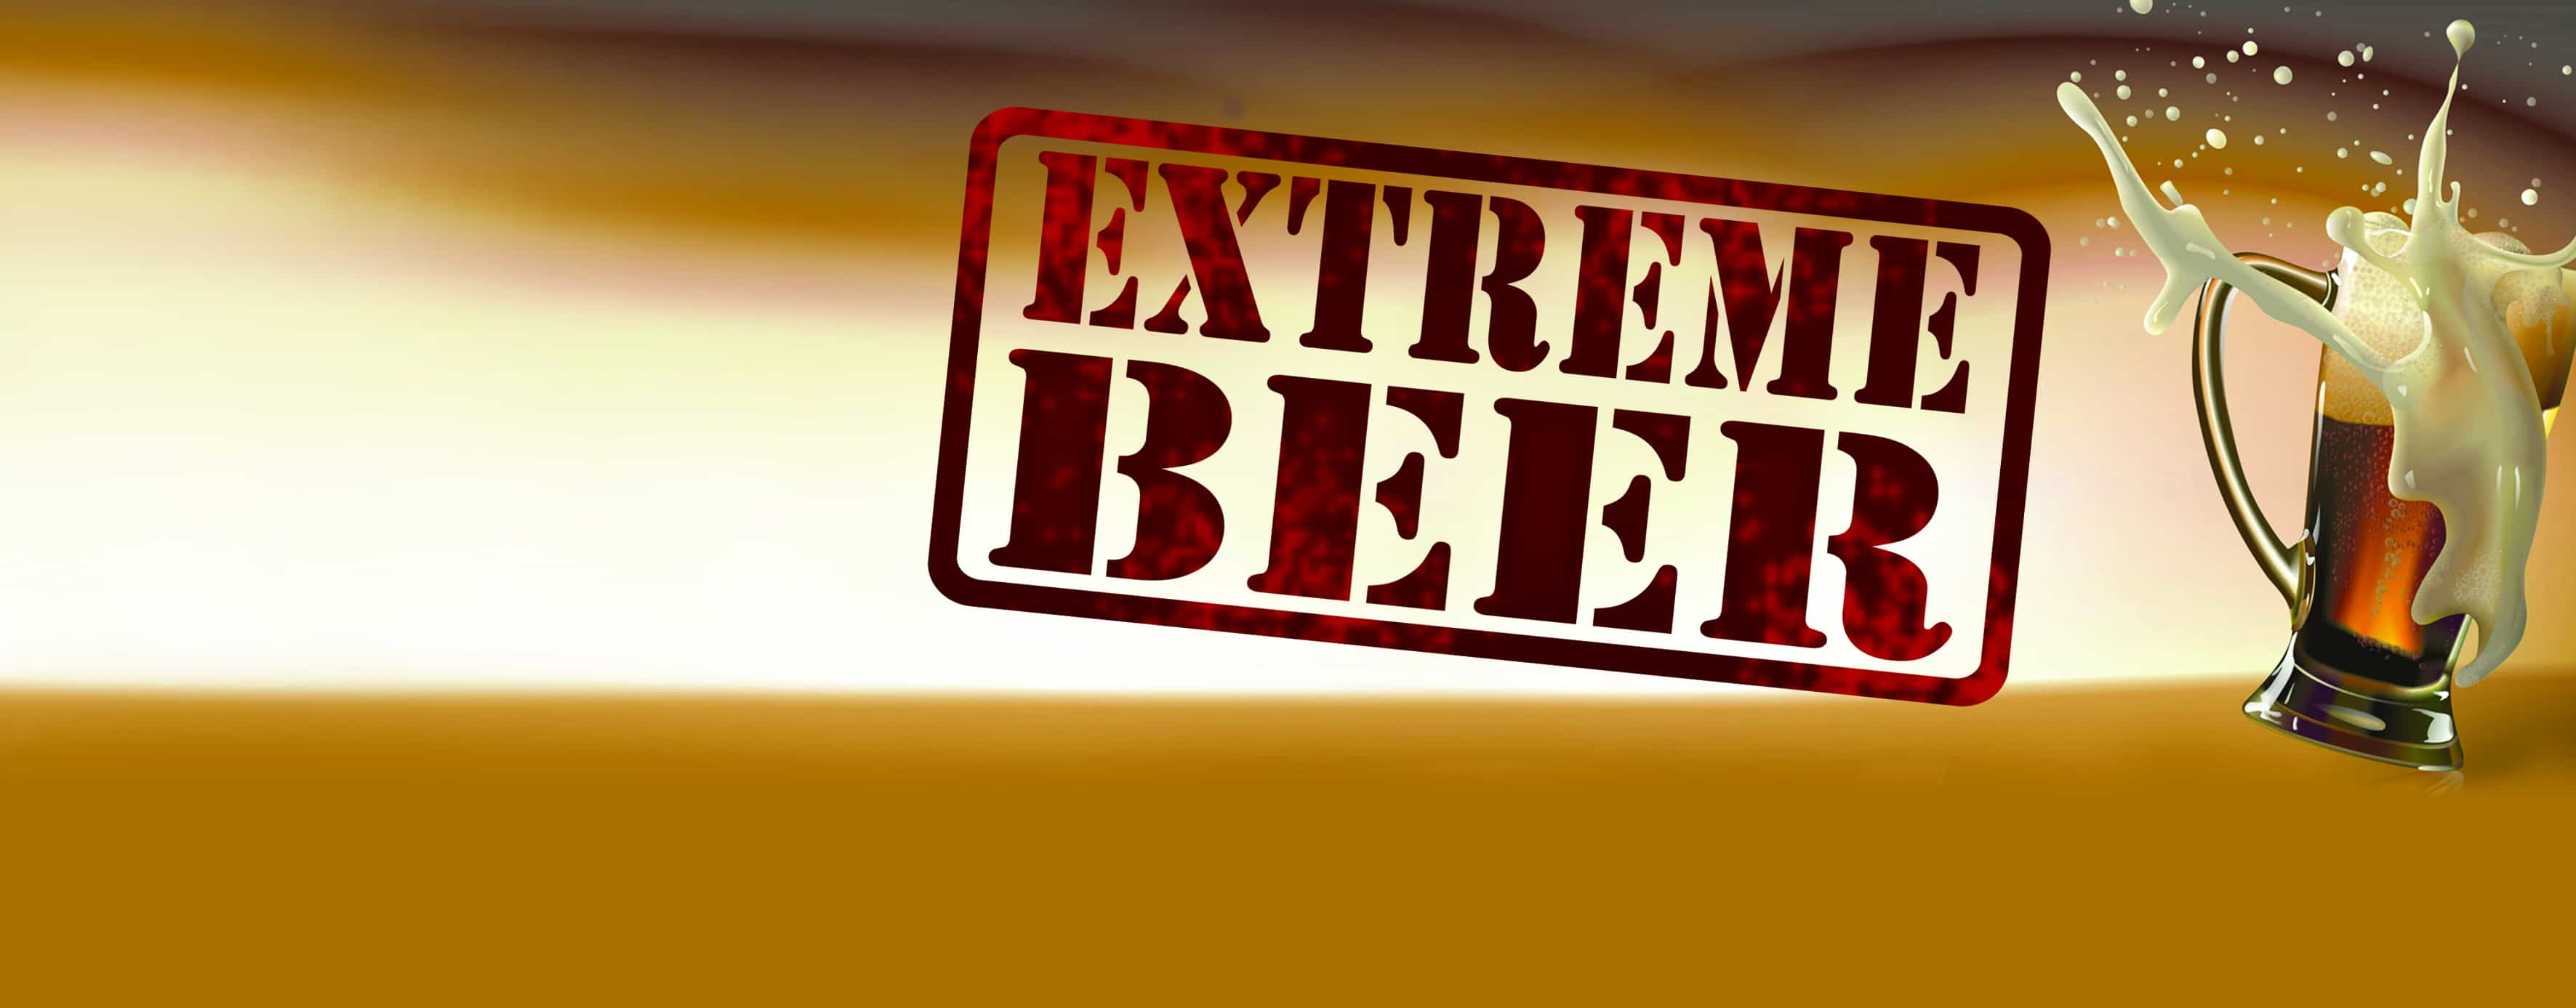 extreme beer 070911